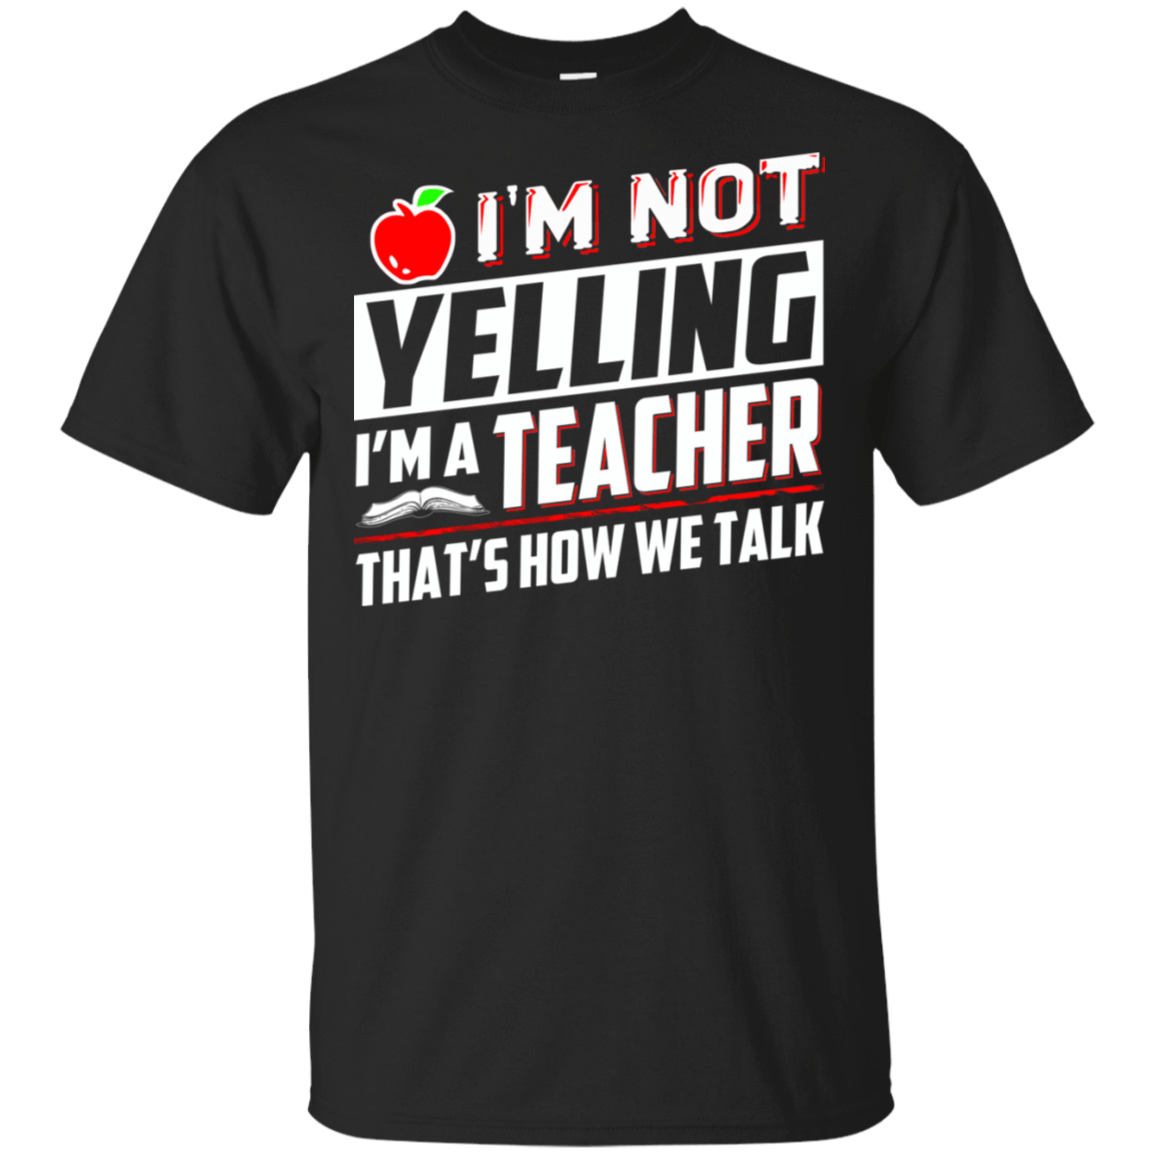 I'm Not Yelling I'm A Teacher That's How We Talk 22-113-72789327-252 - Tee Ript